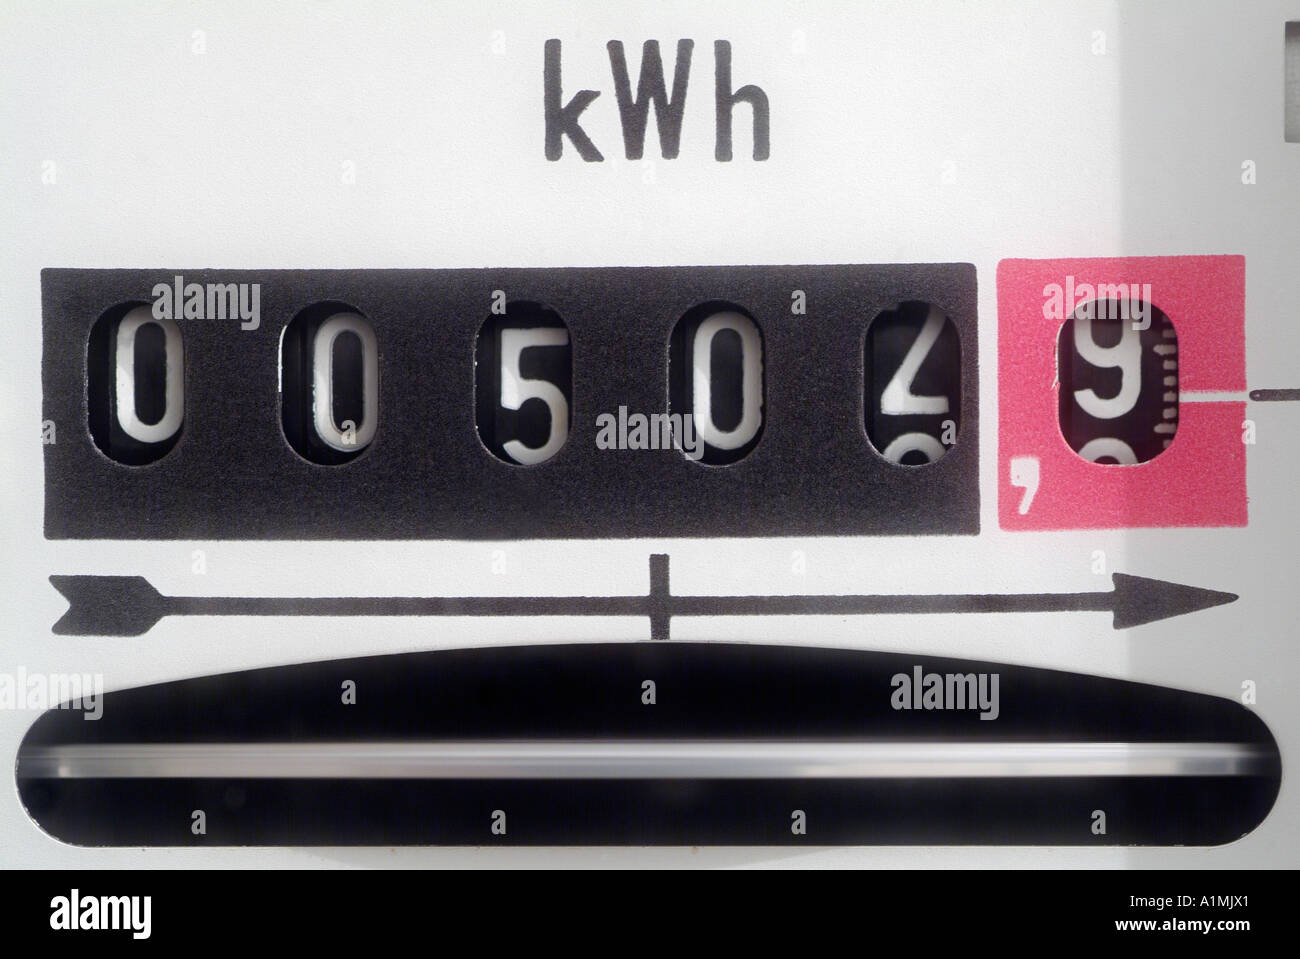 Electricity Meter Display Close Up - Stock Image